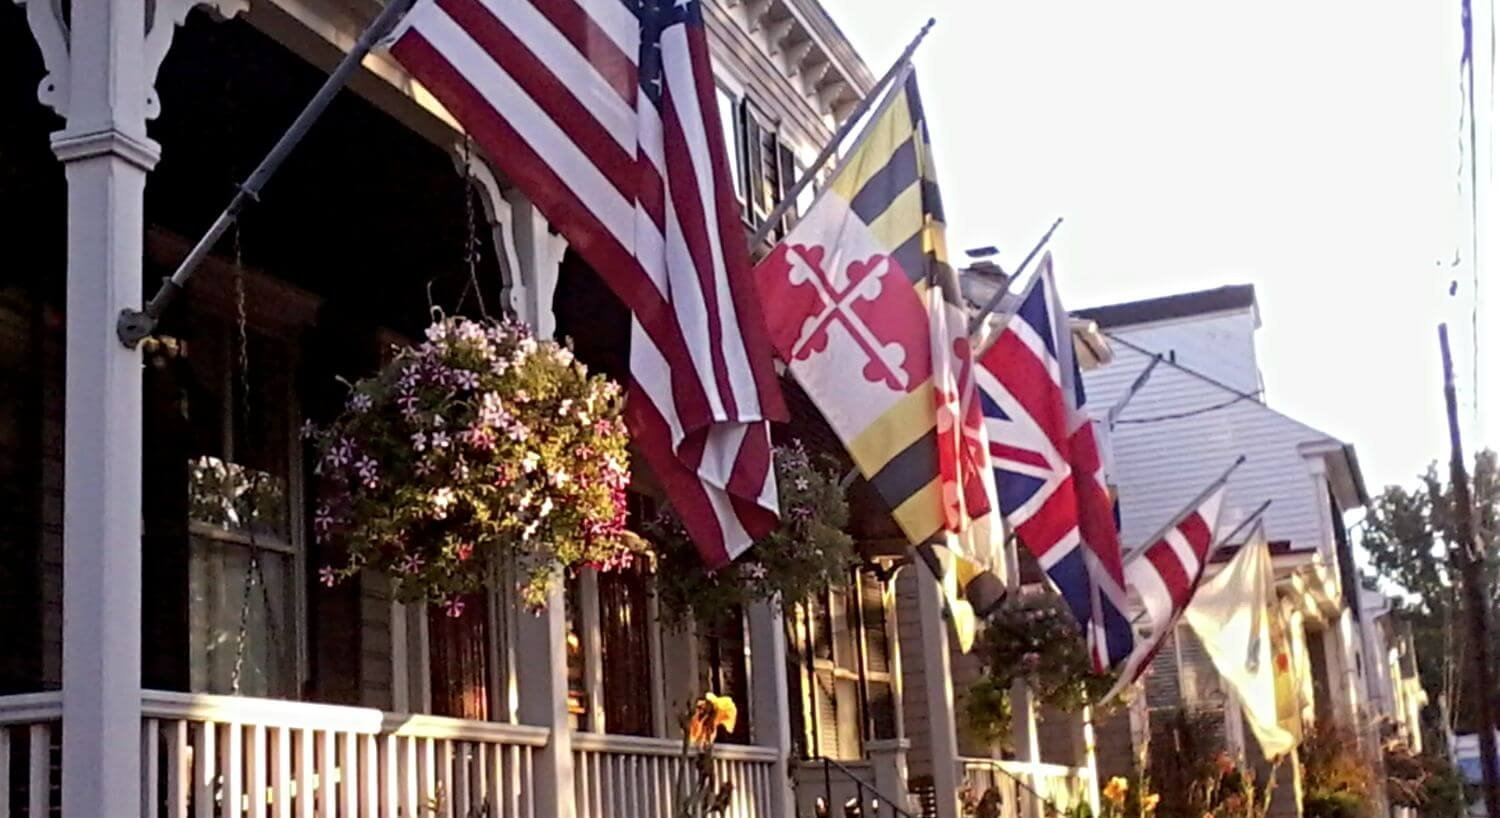 Flags flying from porch of large house in historic area